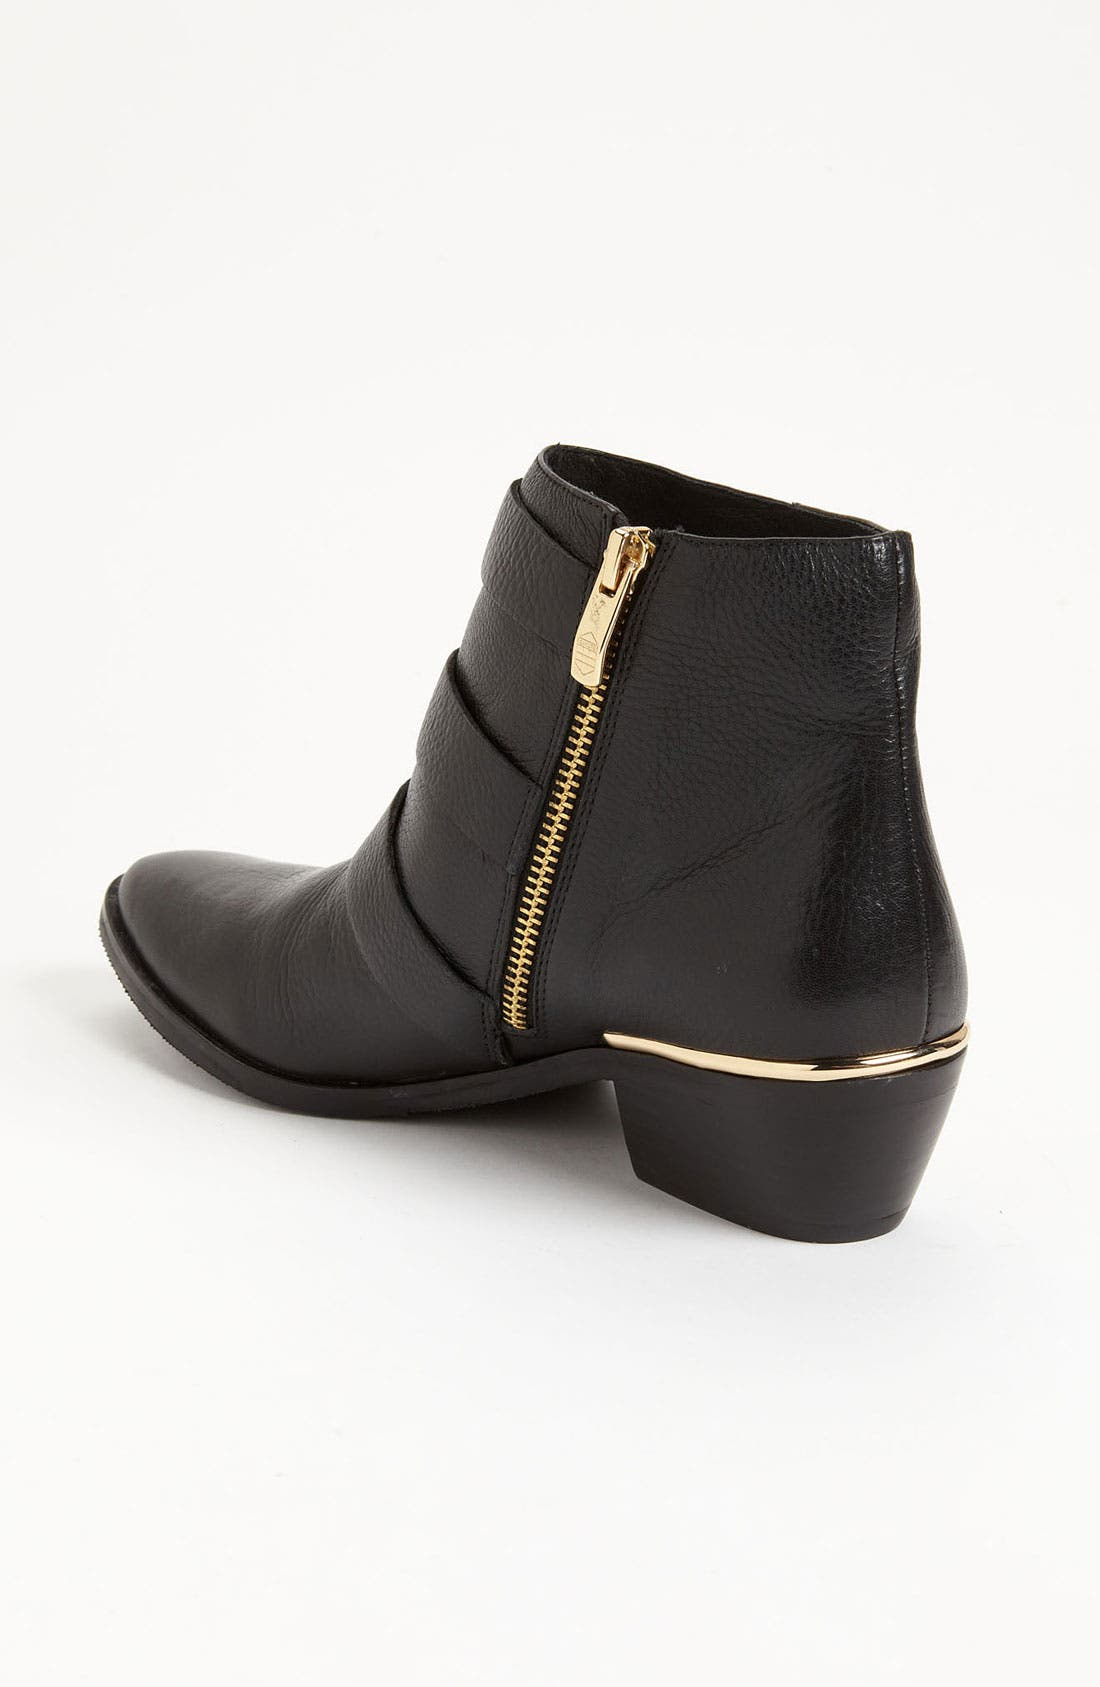 VINCE CAMUTO, 'Tipper' Boot, Alternate thumbnail 2, color, 002